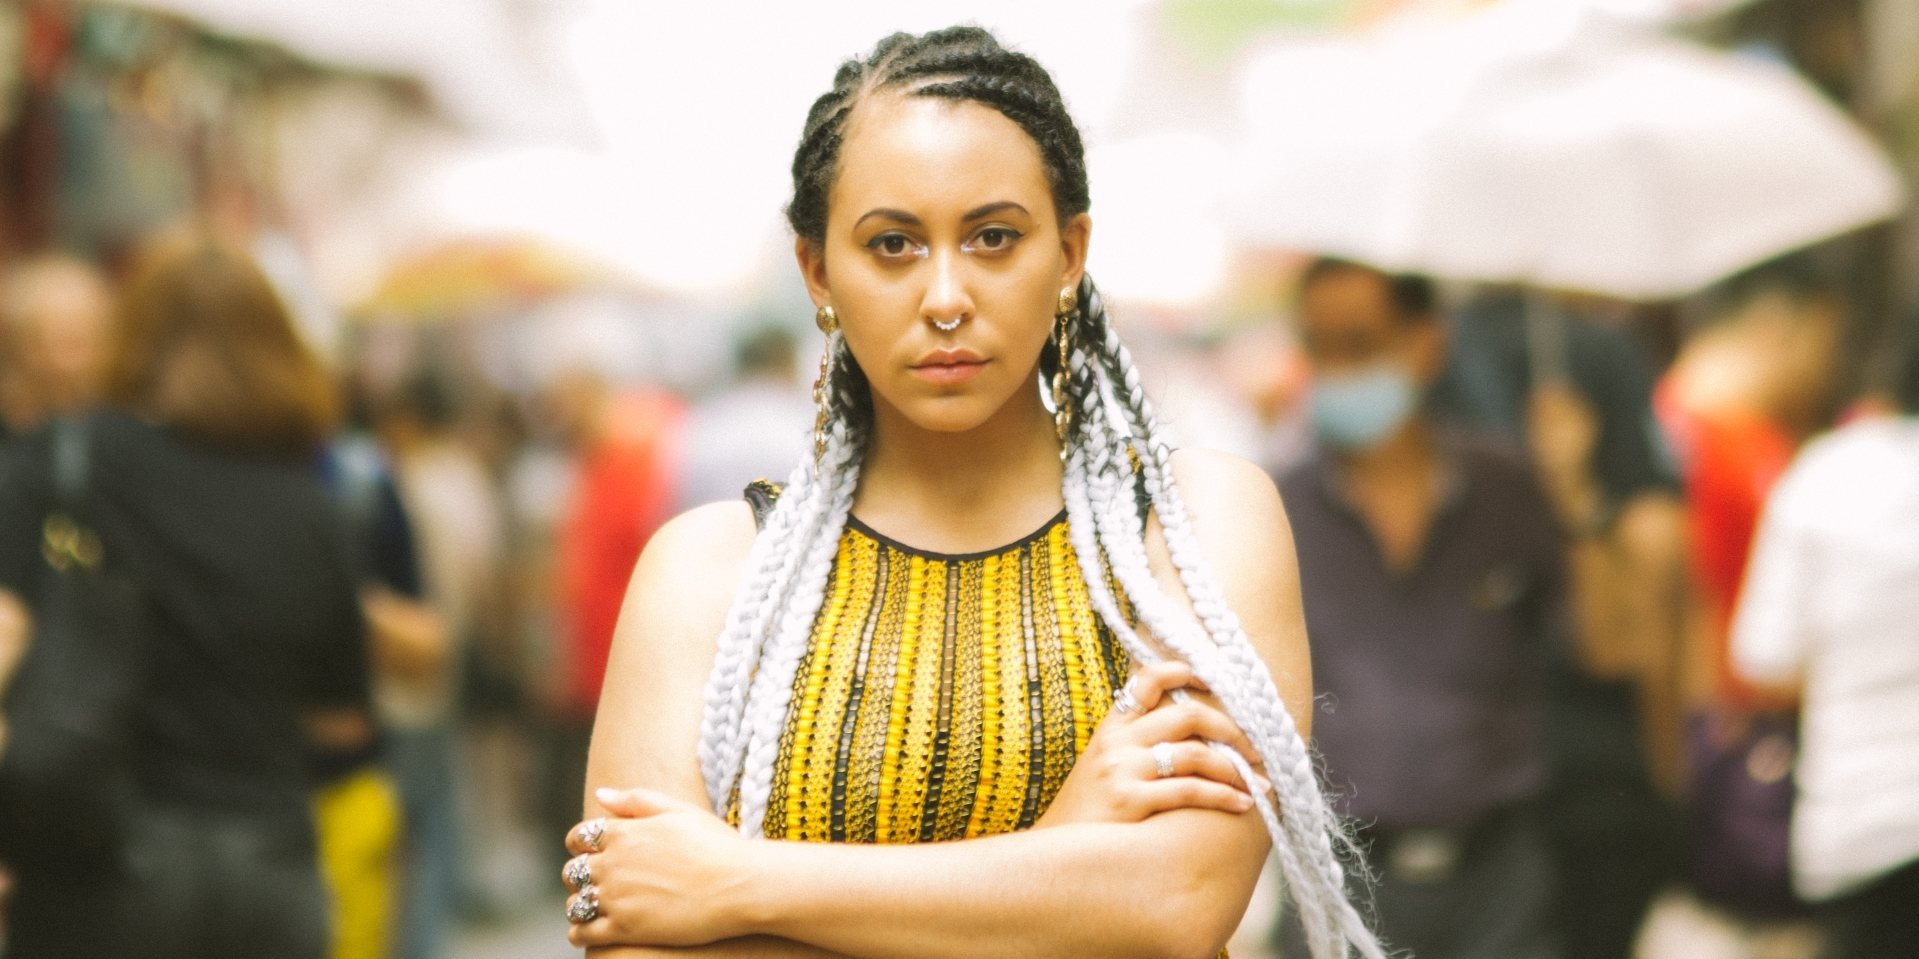 """""""I'm allowing my ego to come out more in my music"""": An interview with Jamilla"""